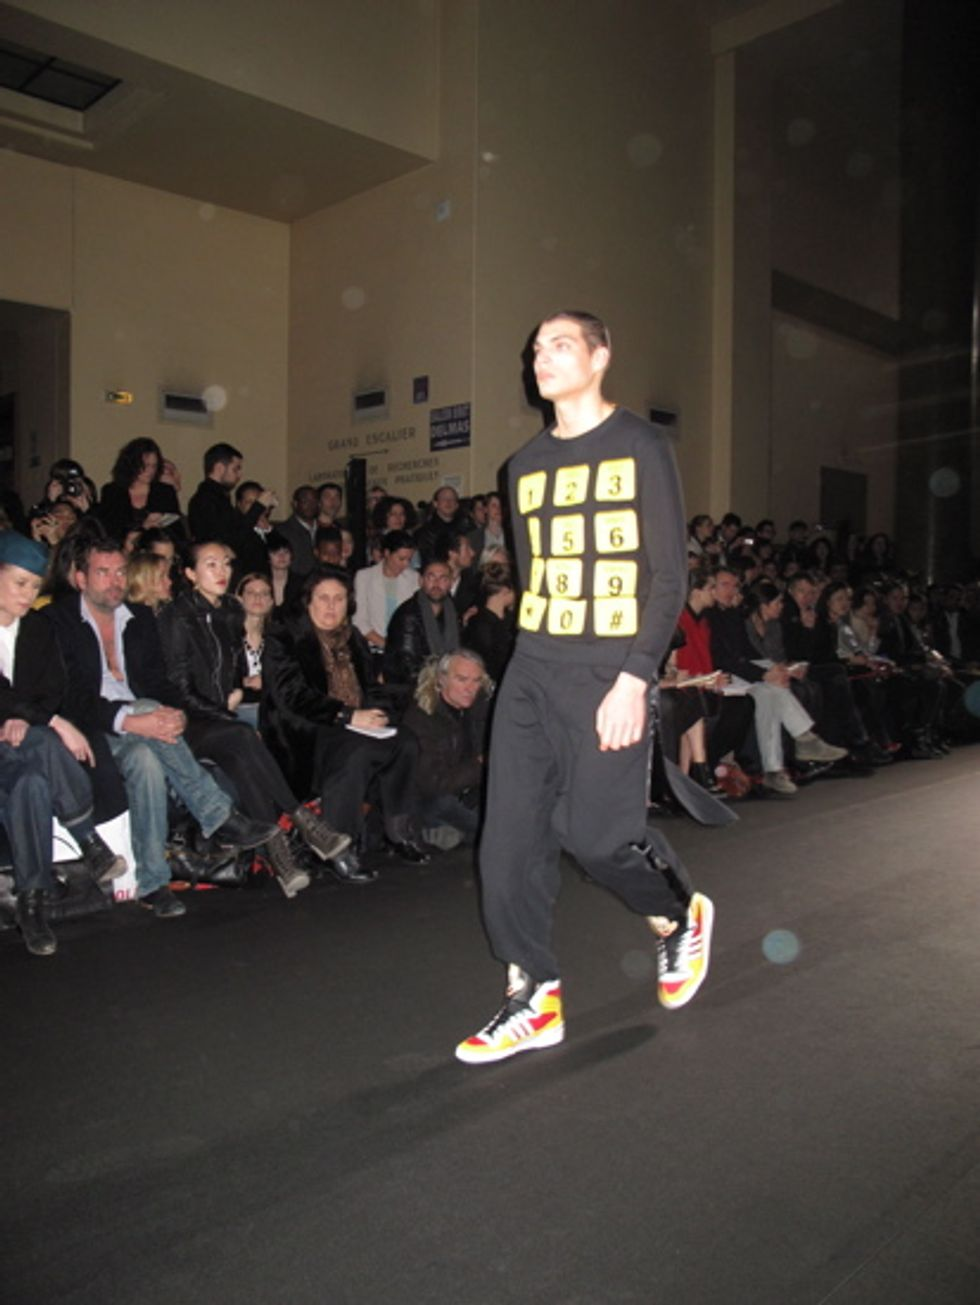 Fun Fun Fun at Jeremy Scott!!